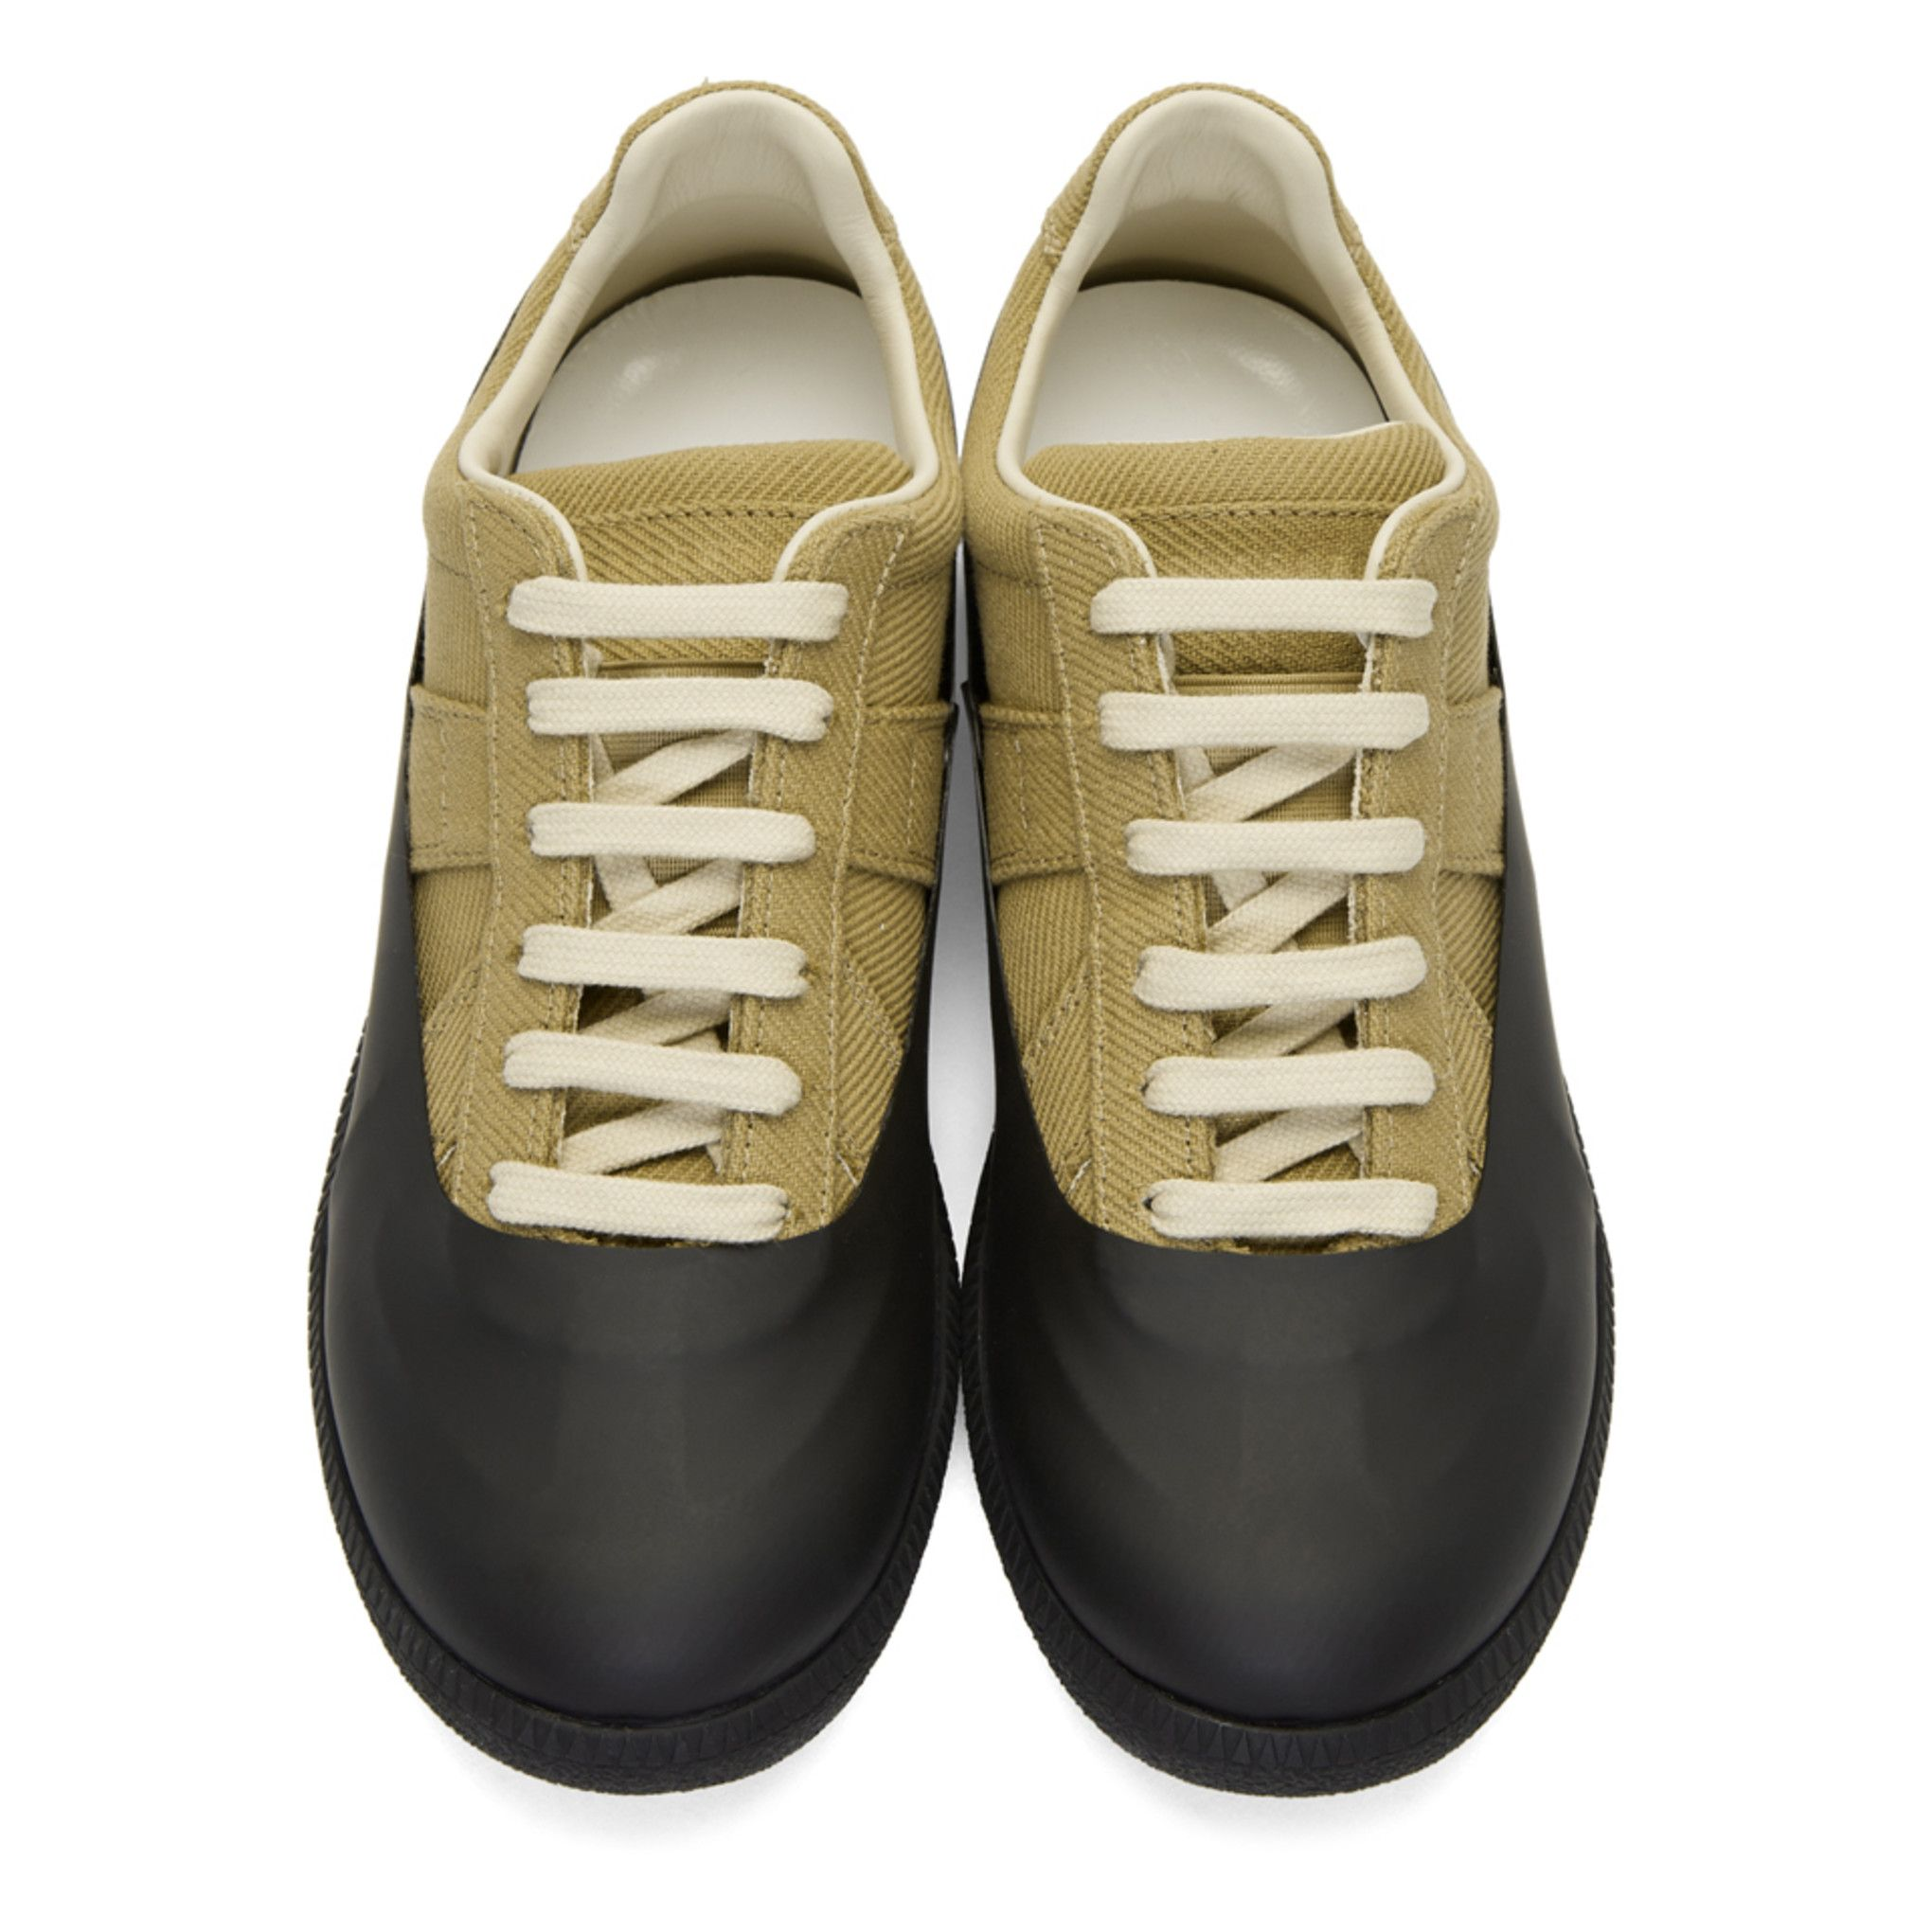 Khaki and Black Galosh Replica Sneakers Maison Martin Margiela Free Shipping Deals Clearance Find Great Cheap Enjoy Good Selling Cheap Online 4DCpw9M3